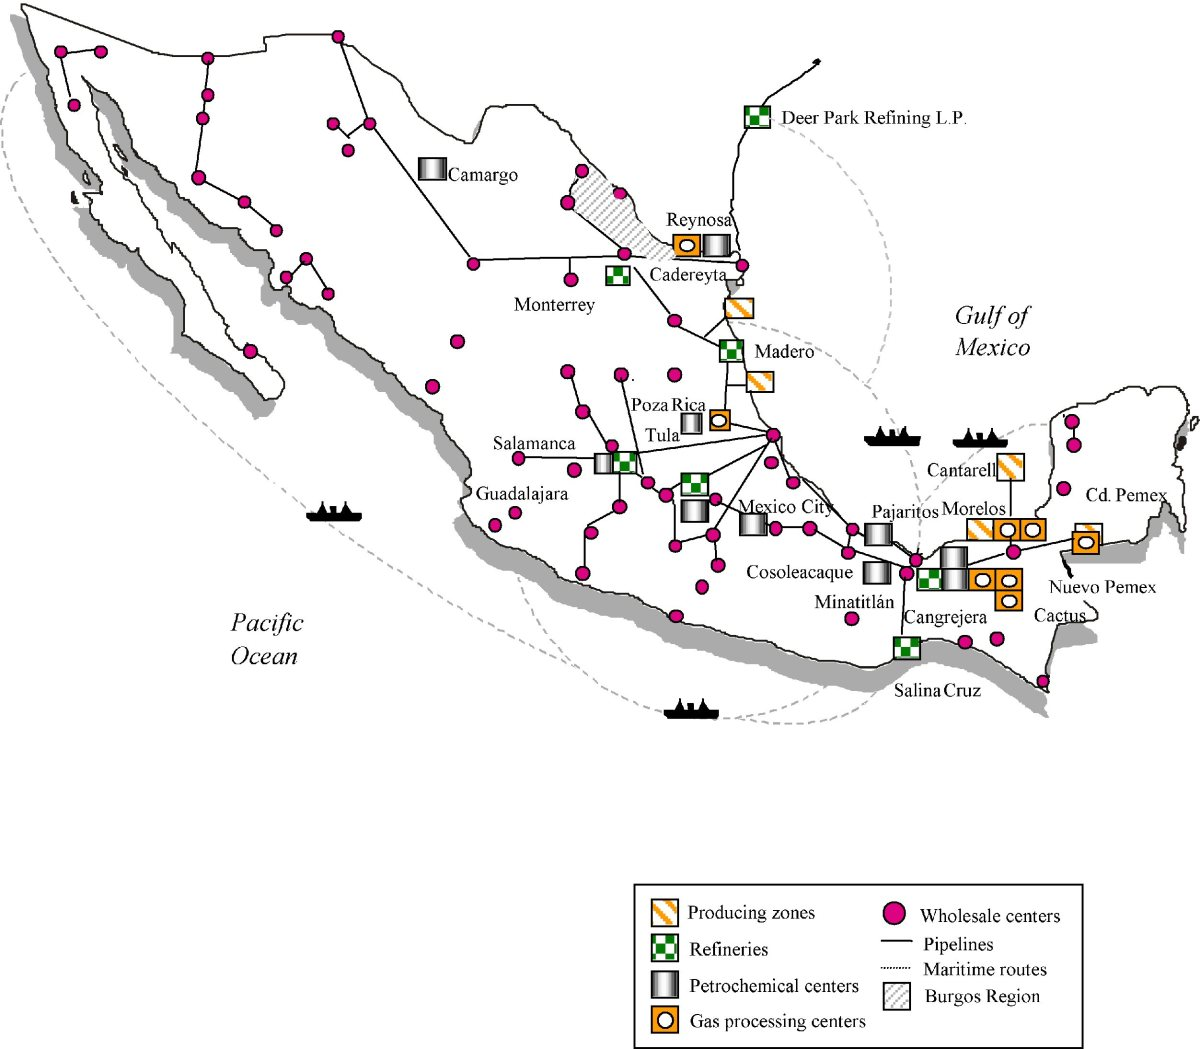 INFRASTRUCTURE OF OIL INDUSTRY NATIONALIZED BY MEXICO IN 1938